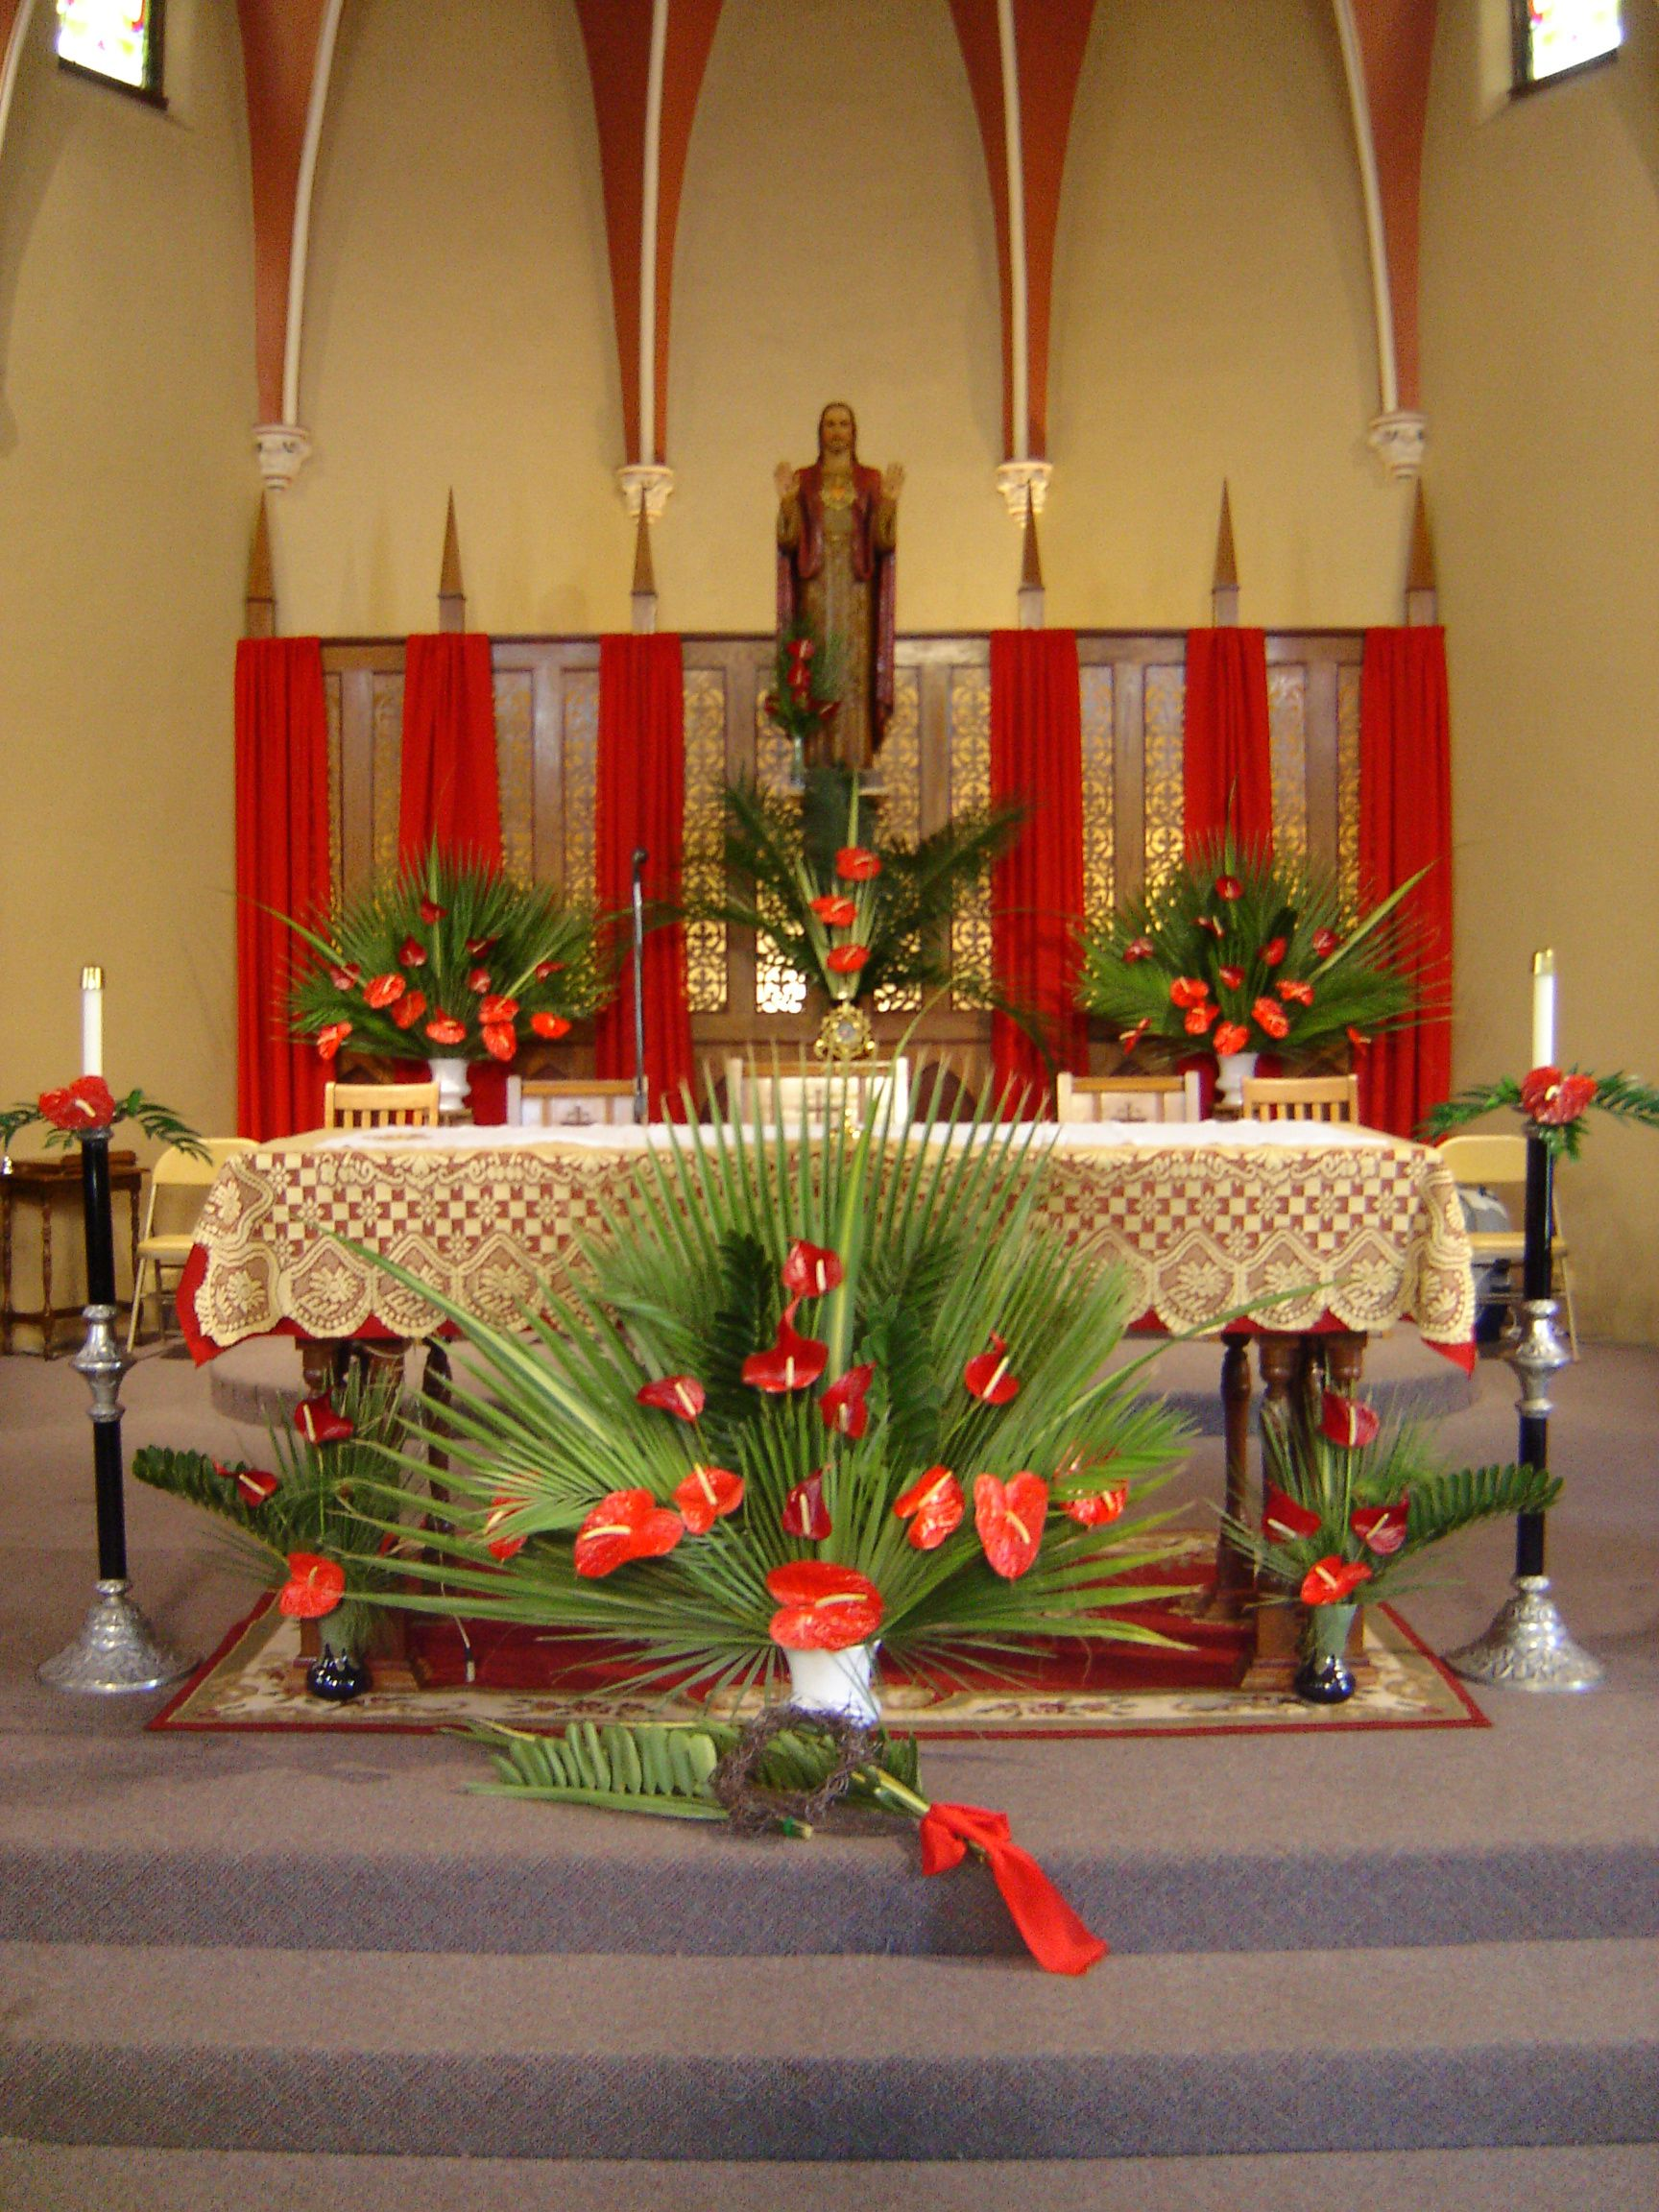 De Decoration 40 Inspirational Church Christmas Decorations Ideas Church Deco